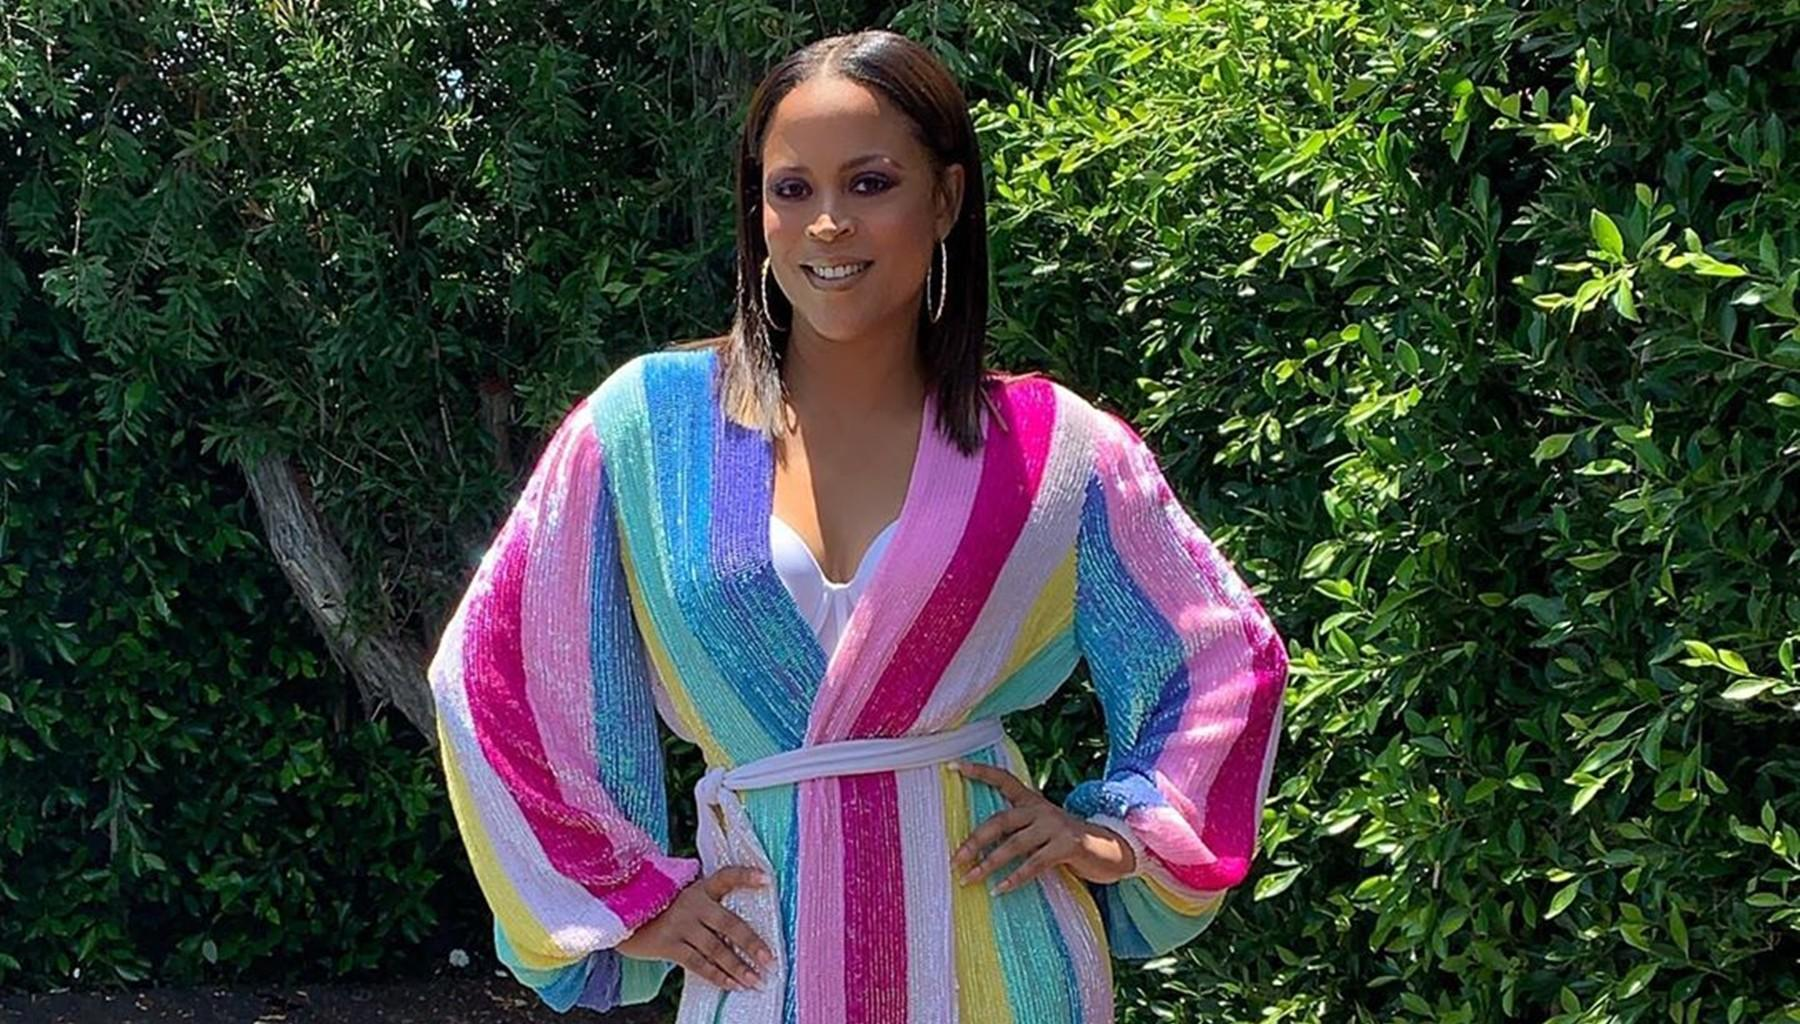 Shaunie O'Neal Shares Video Of Her Son, Shareef O'Neal's Massive Tattoo Of Her Face -- Shaquille' Son Love Is Unquestionable And Sets The Bar High